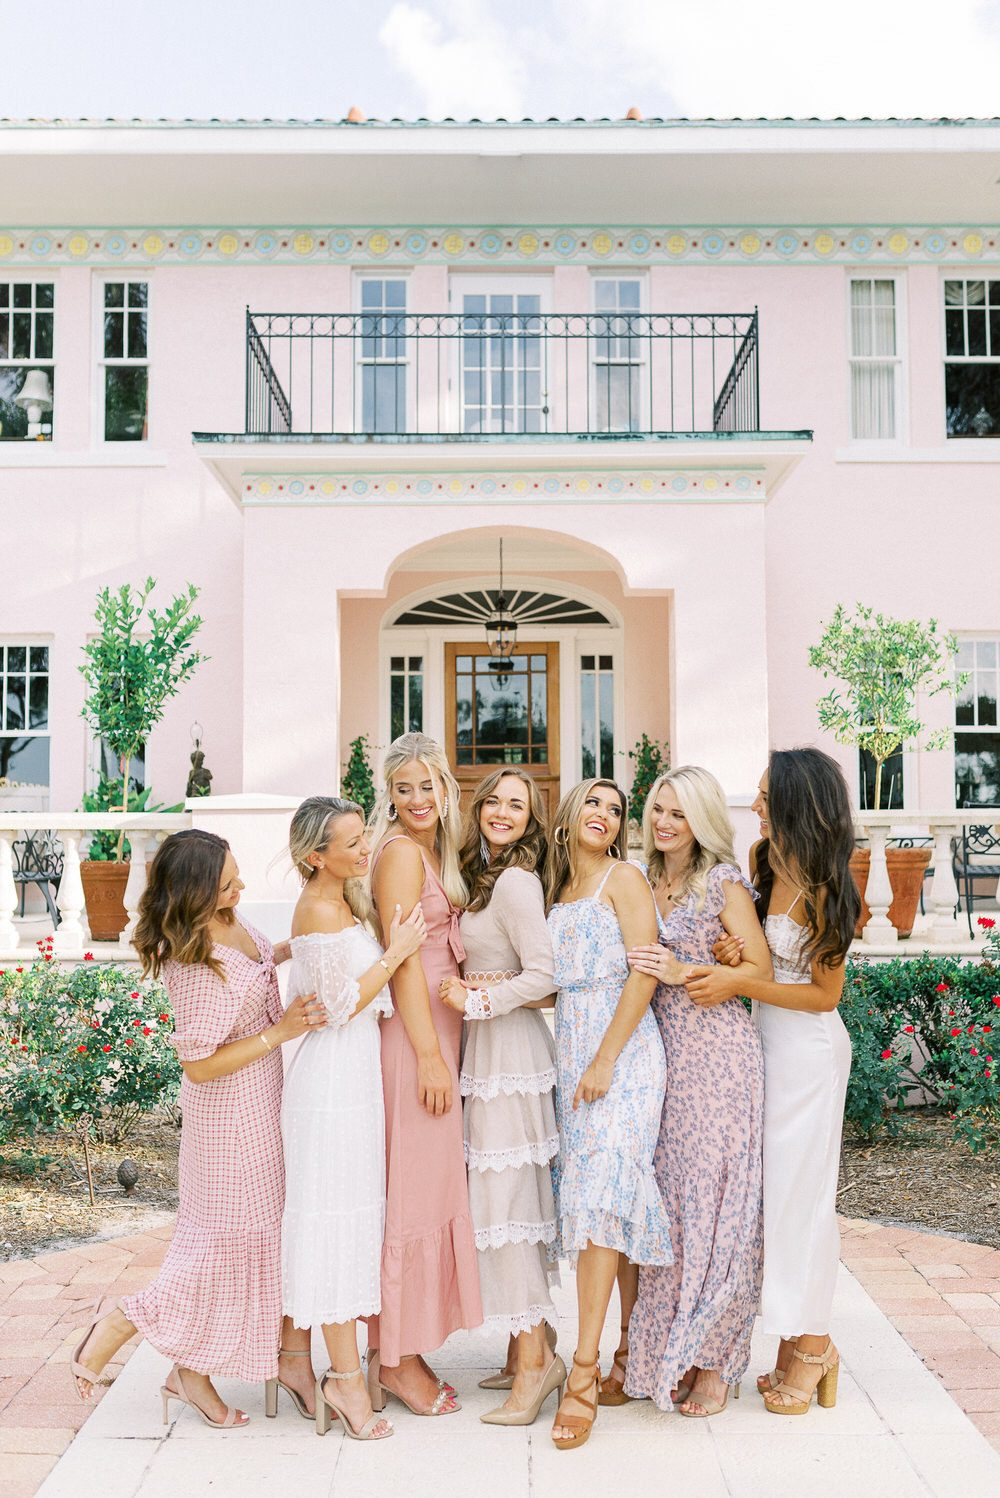 bride with her bridesmaids in cute flirty dresses